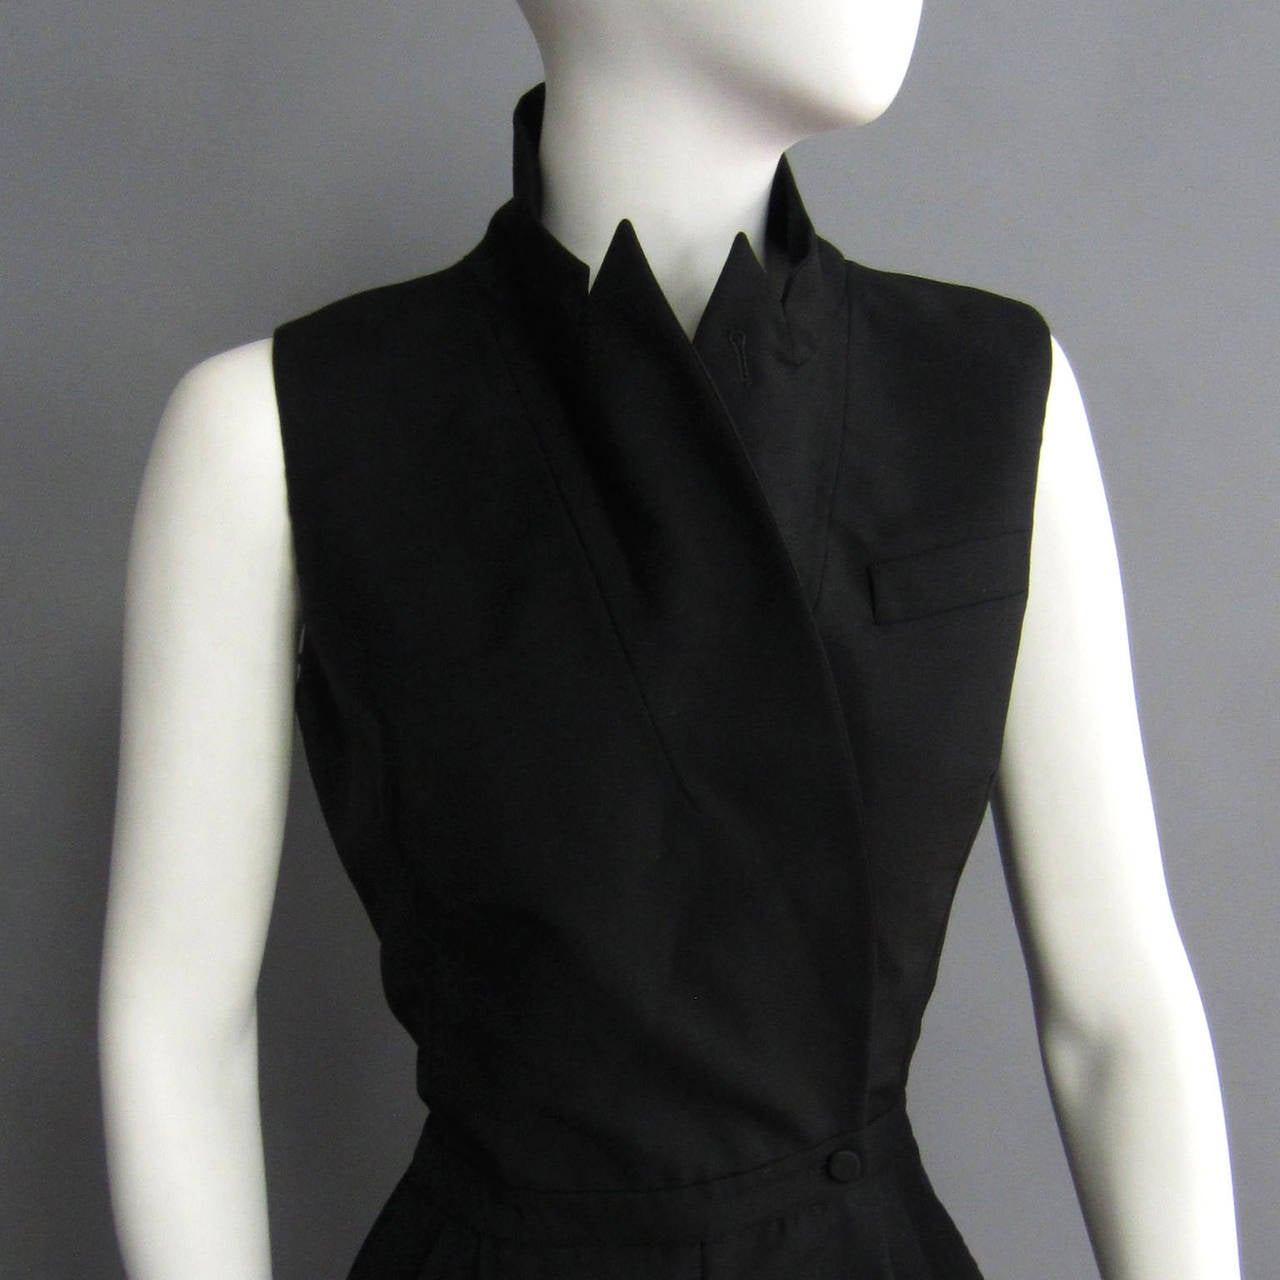 2000s ALEXANDER McQUEEN Tuxedo Jumpsuit In Excellent Condition For Sale In New York, NY